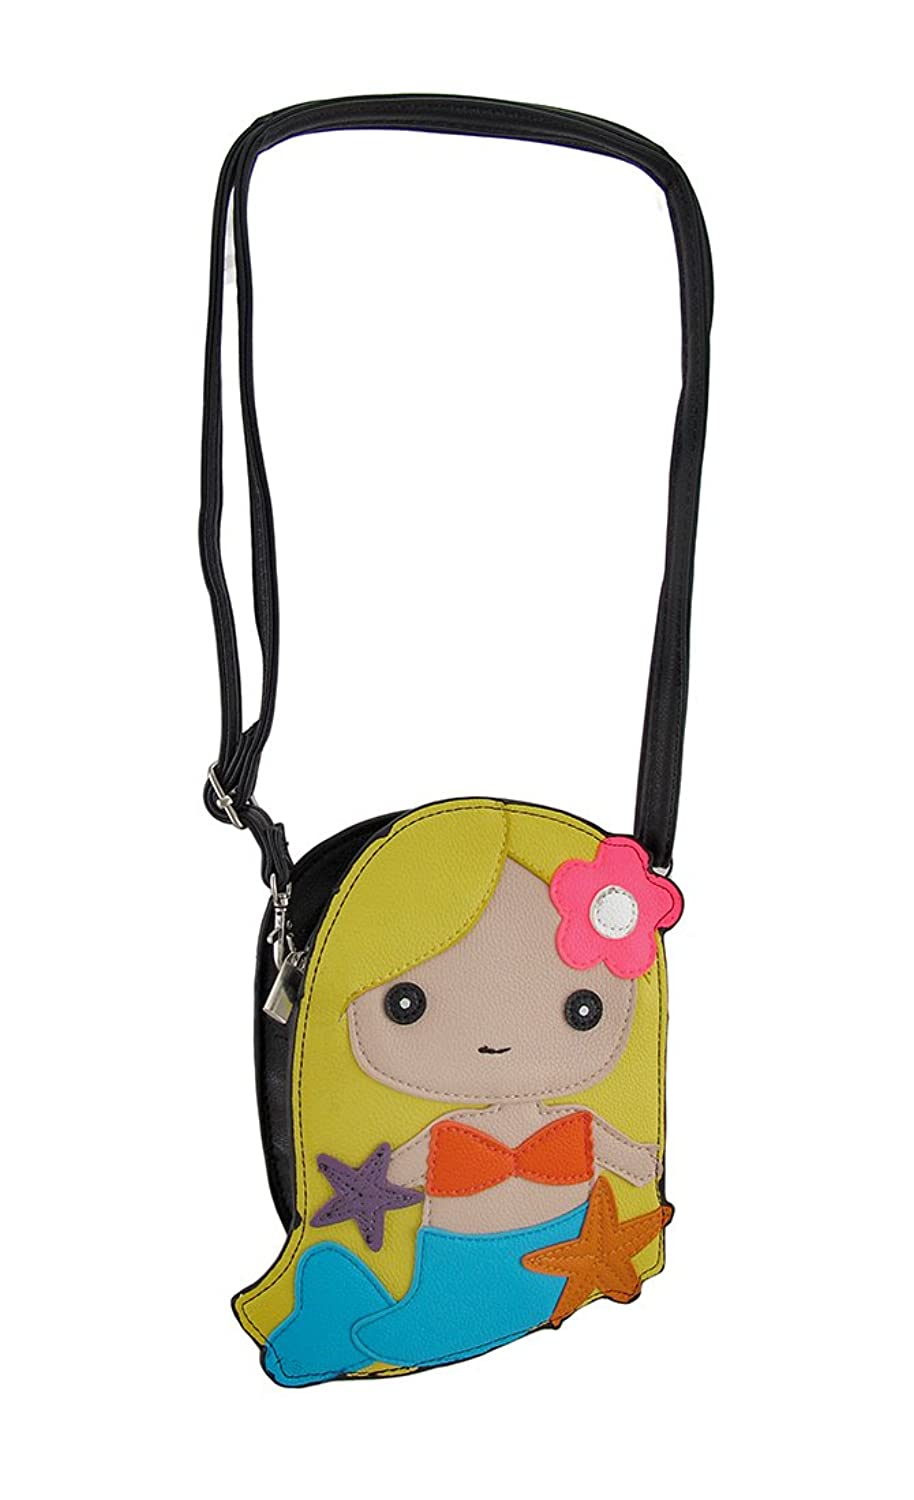 Adorable Colorful Mermaid Girl Crossbody Purse